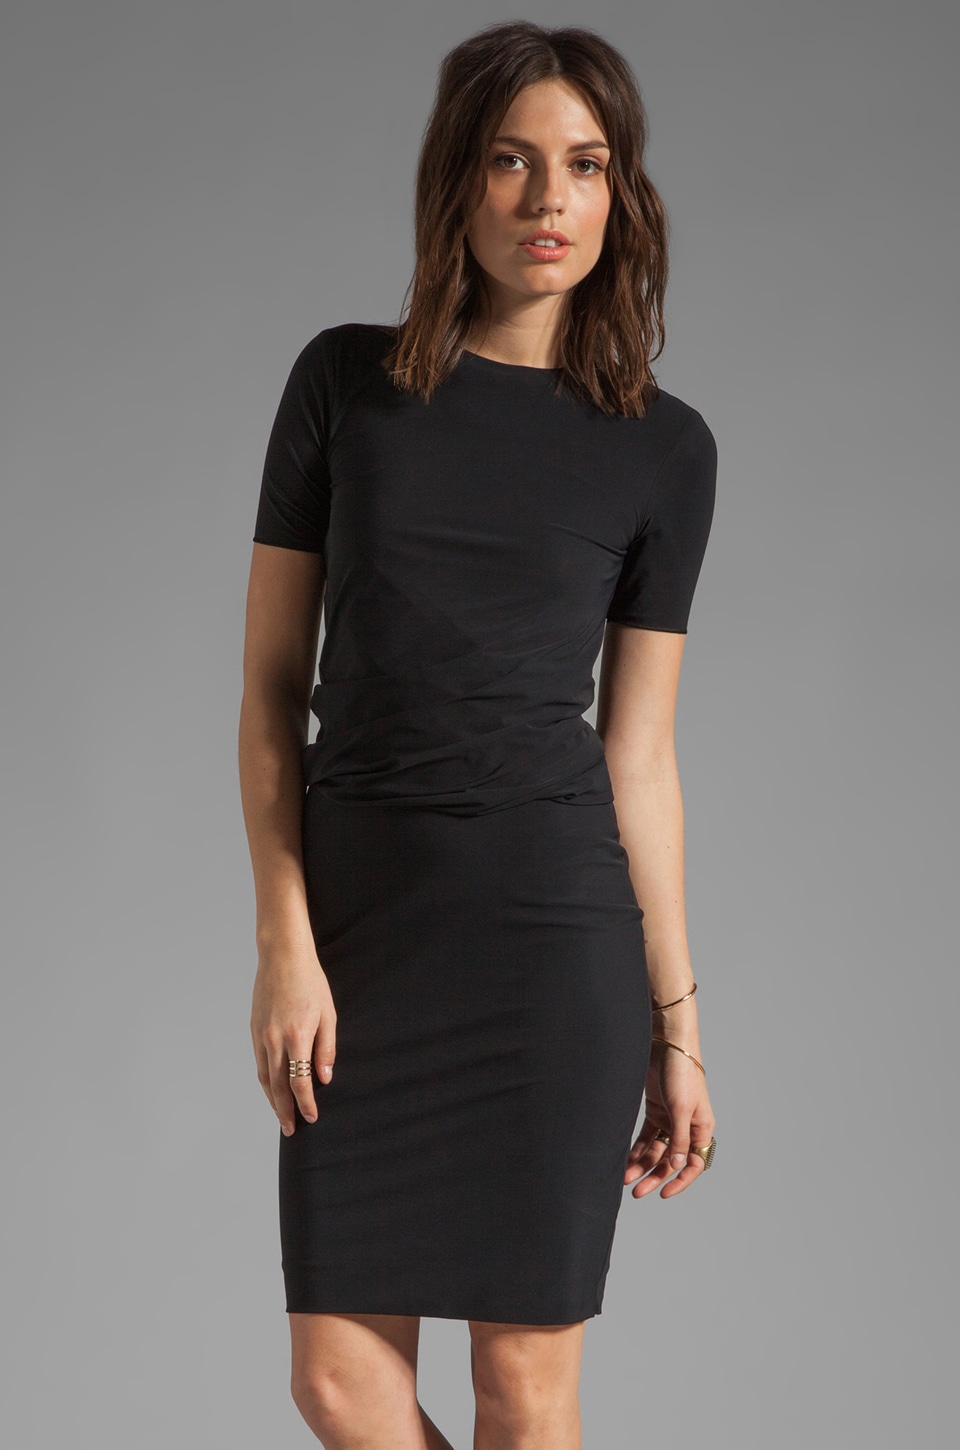 T by Alexander Wang Matte Tricot Twist Dress in Black